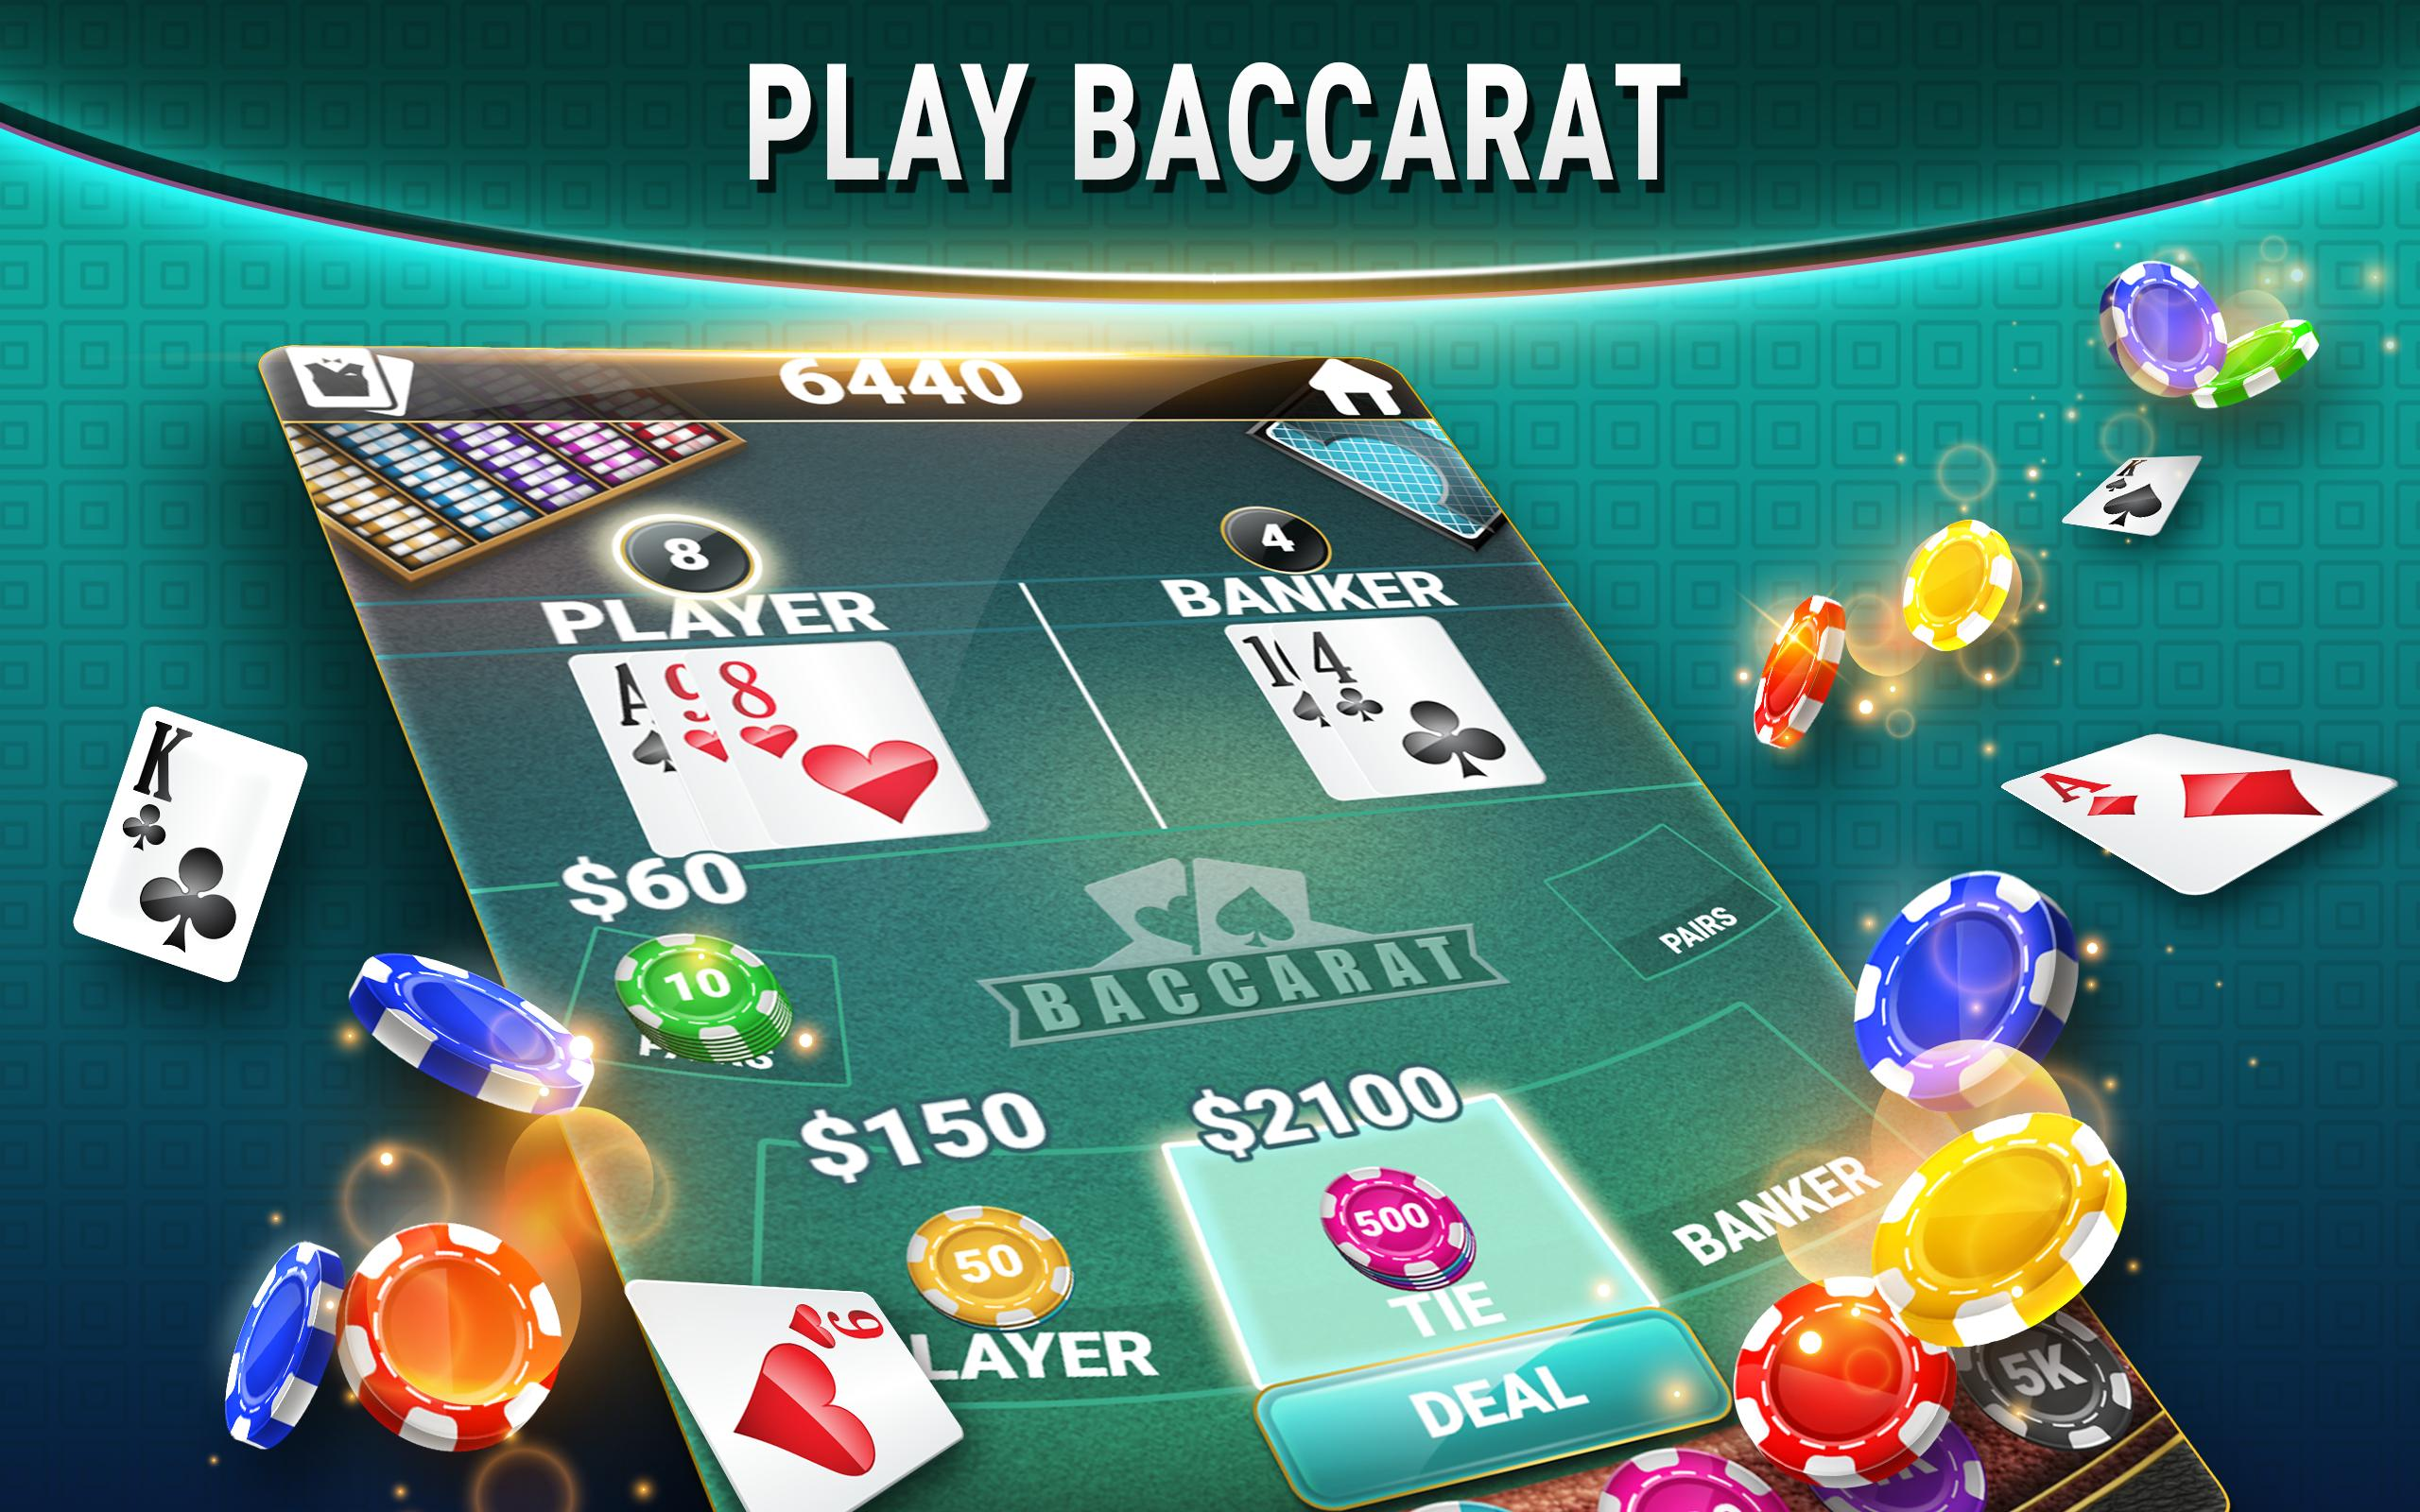 Never Experience From Casino Poker Once Again